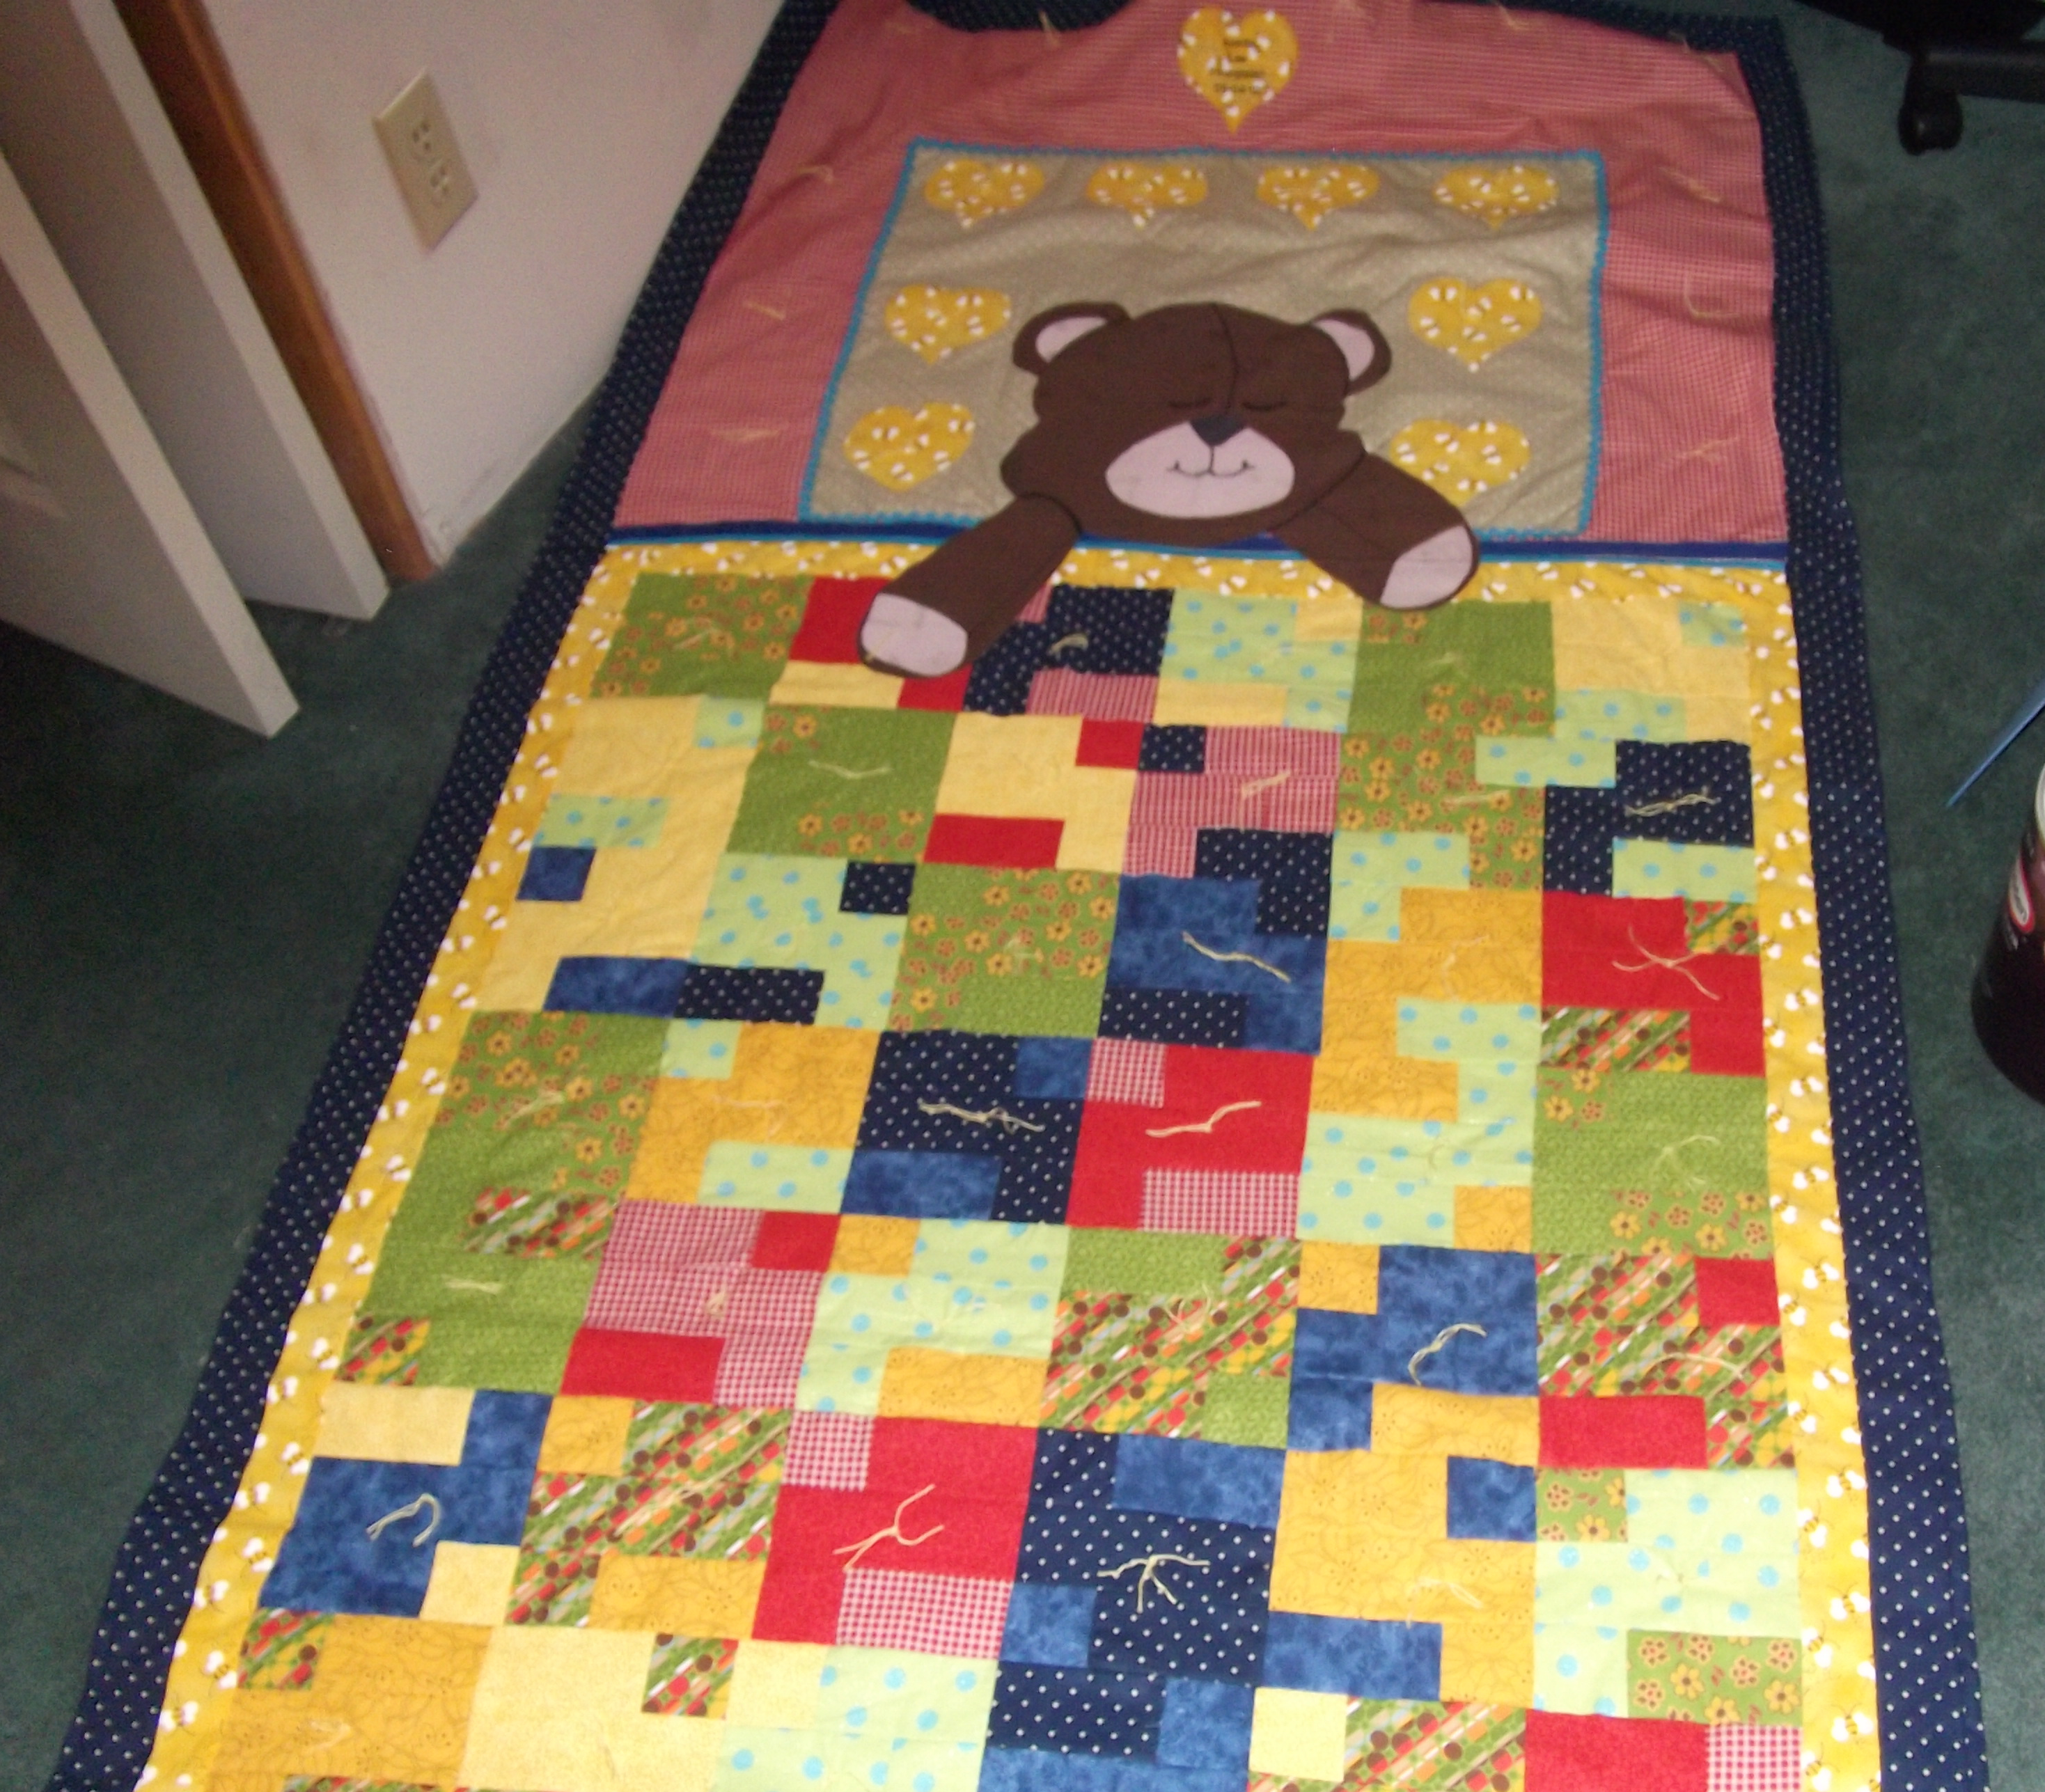 The Bear-y Quilt